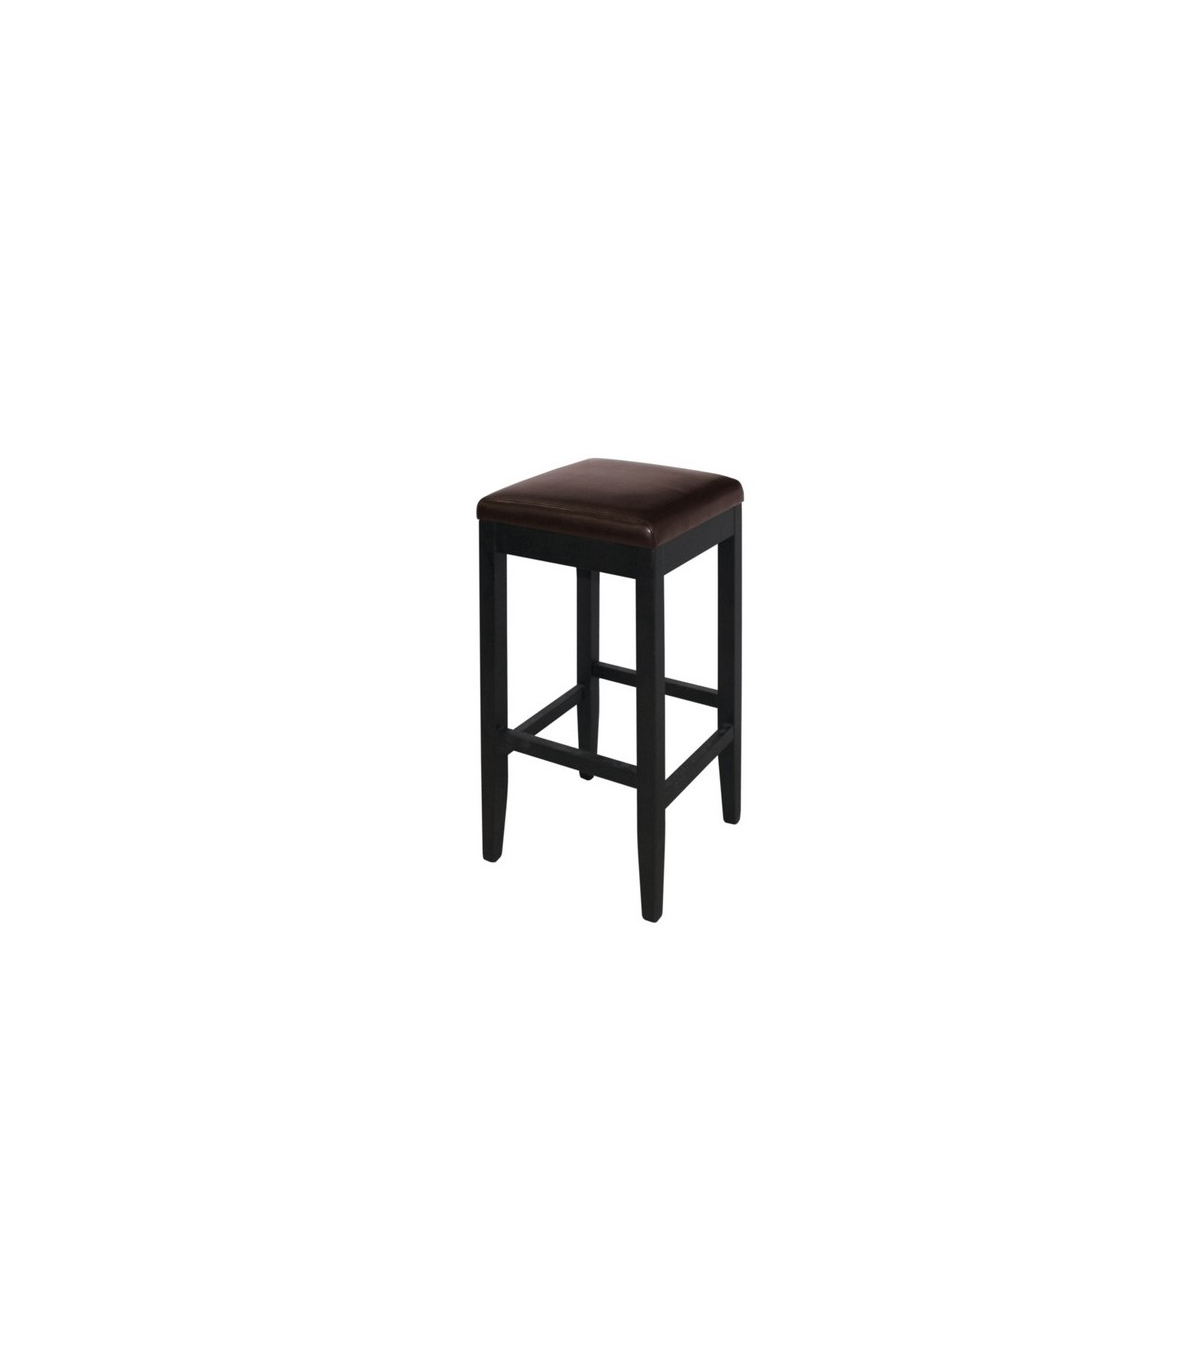 tabouret de bar simili cuir sans dossier mobilier pour restauration. Black Bedroom Furniture Sets. Home Design Ideas